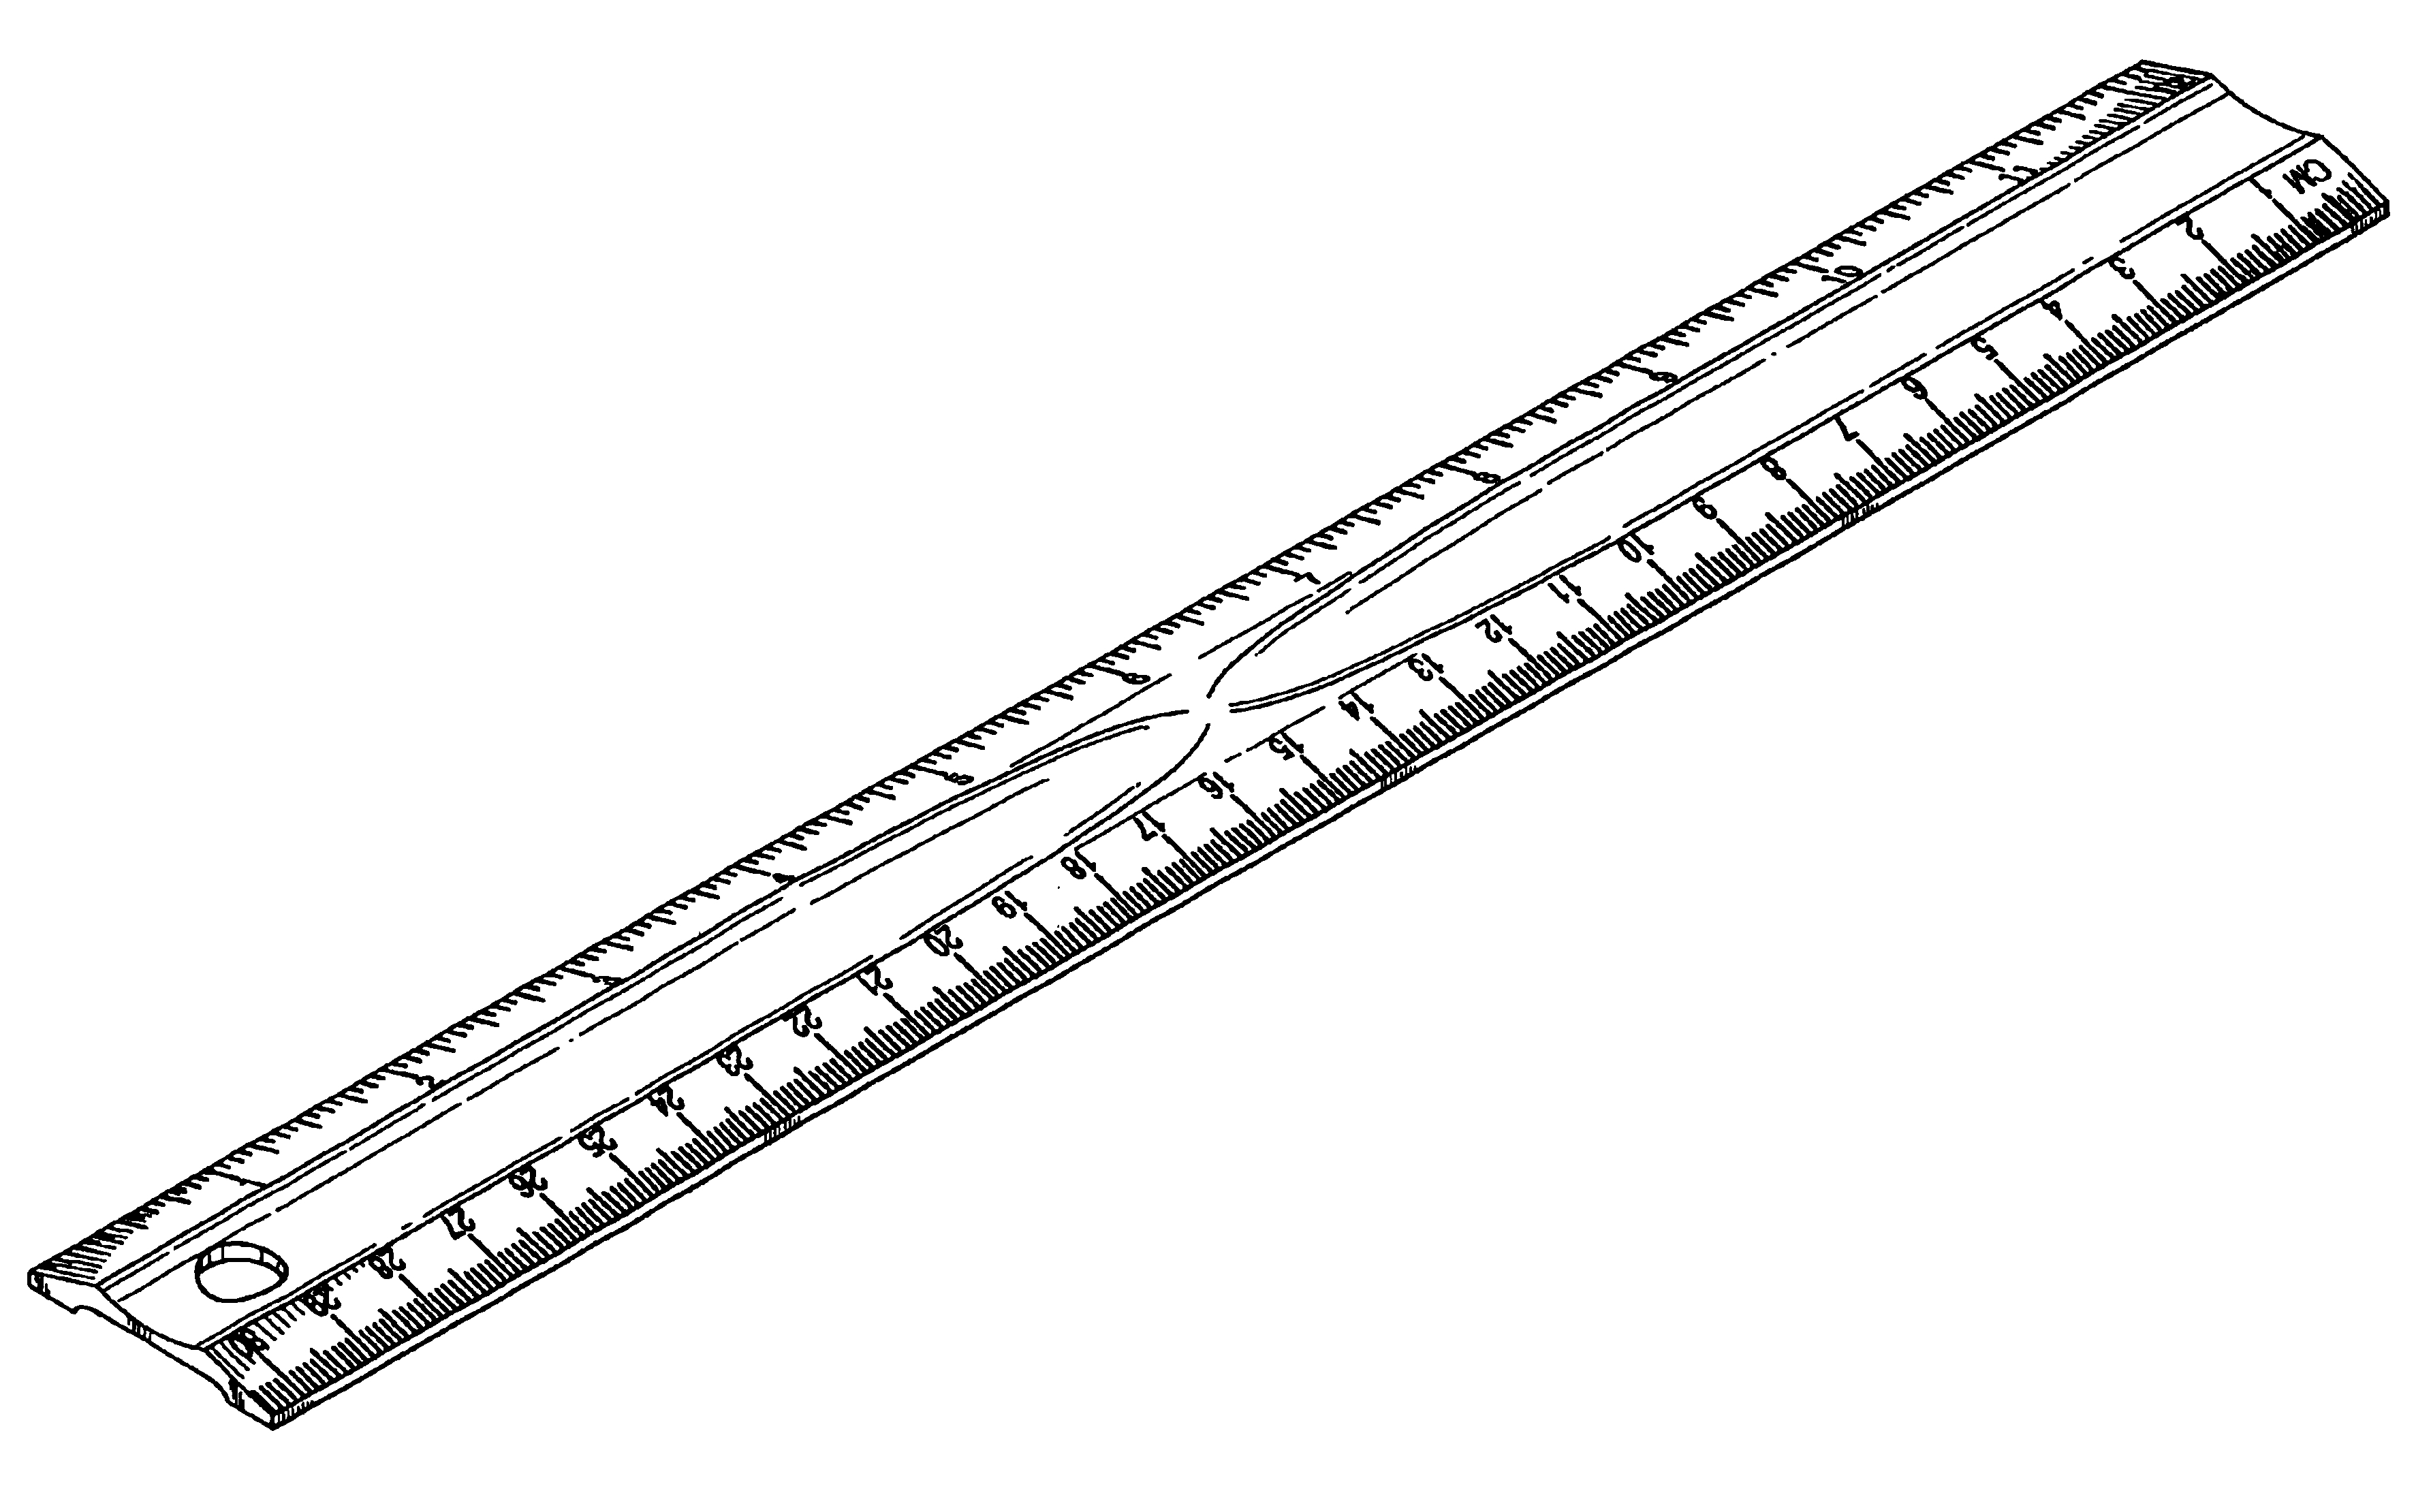 Ruler clipart long ruler. New black and white